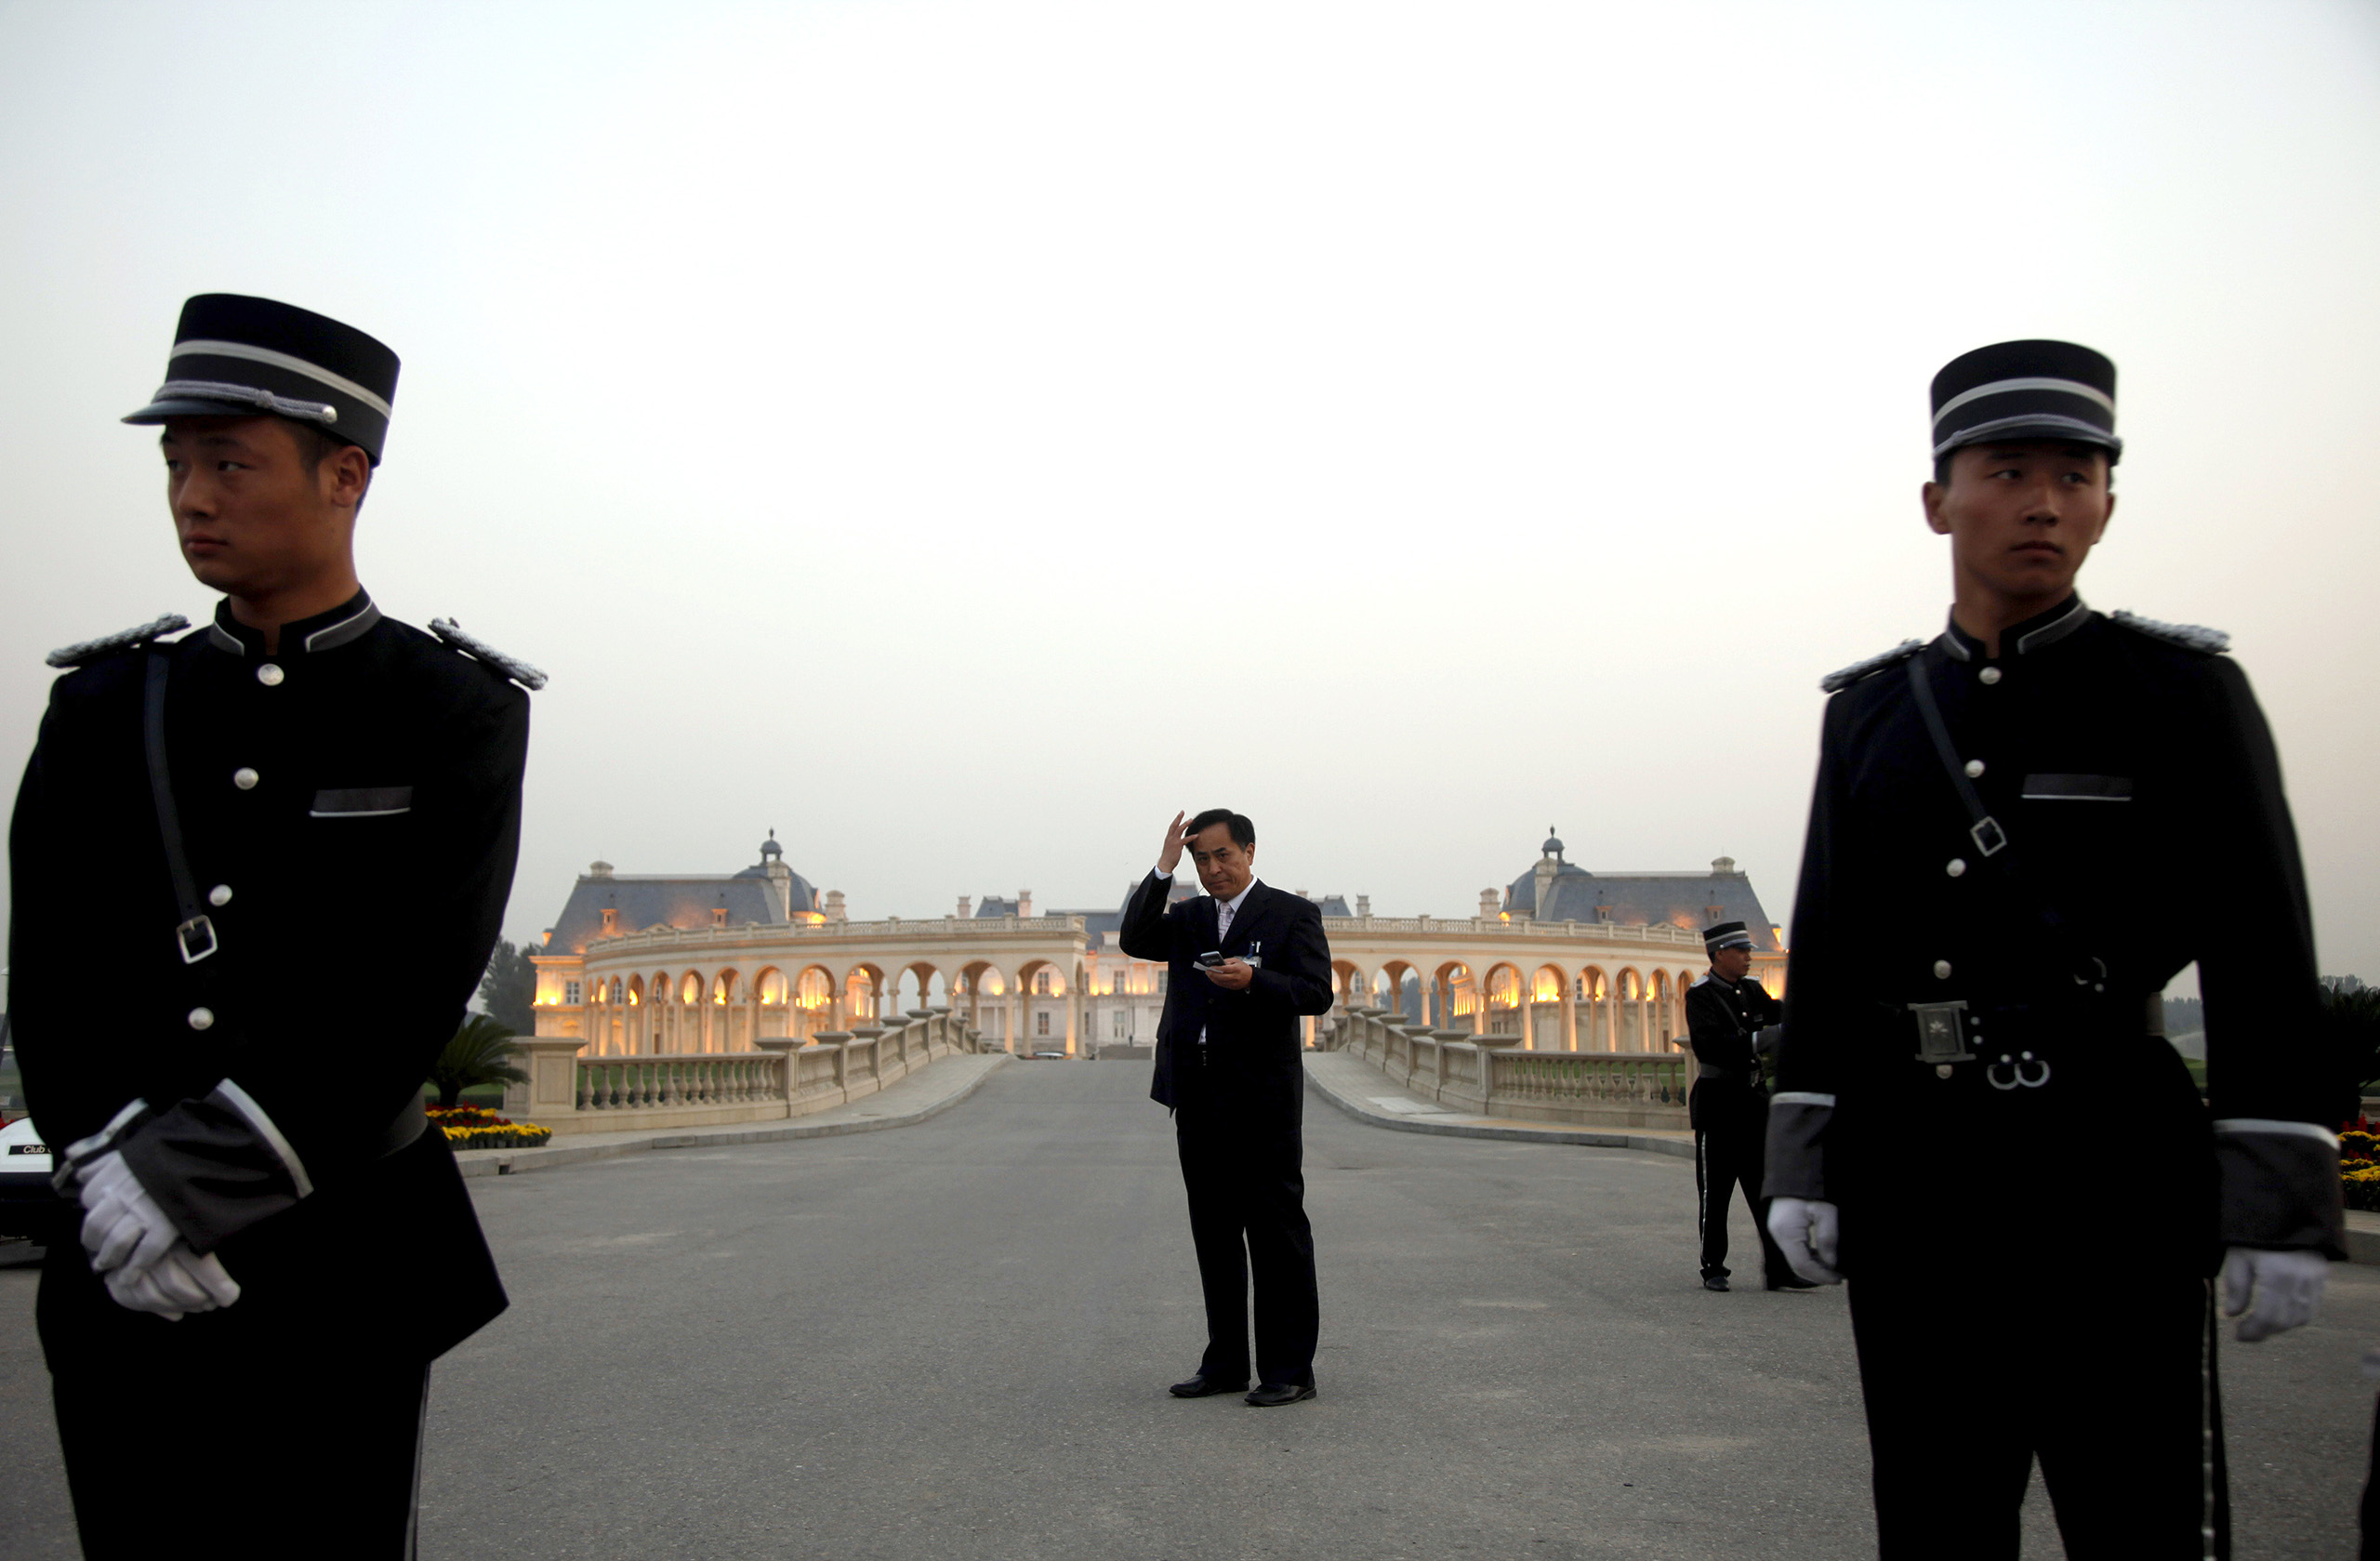 Chinese security personnel wait for guests at a mansion on the edge of Beijing modeled after the baroque 17th century Chateau de Maisons-Laffitte in France.